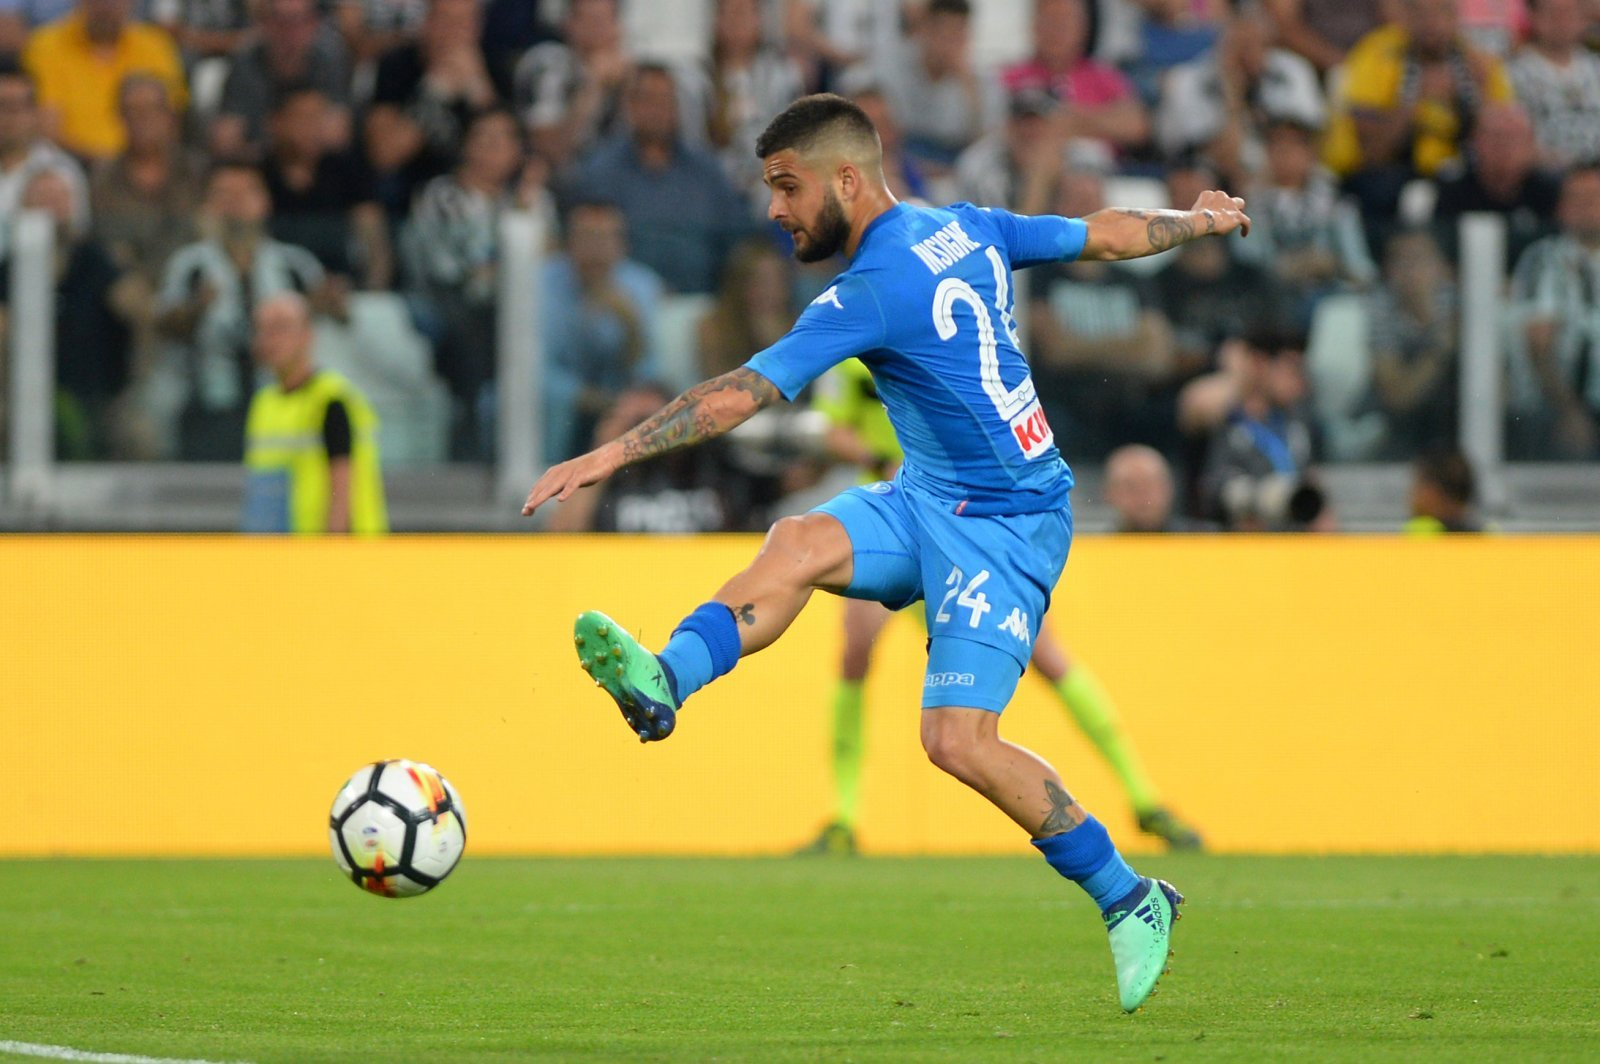 Lorenzo Insigne could bring a creative influence to Liverpool